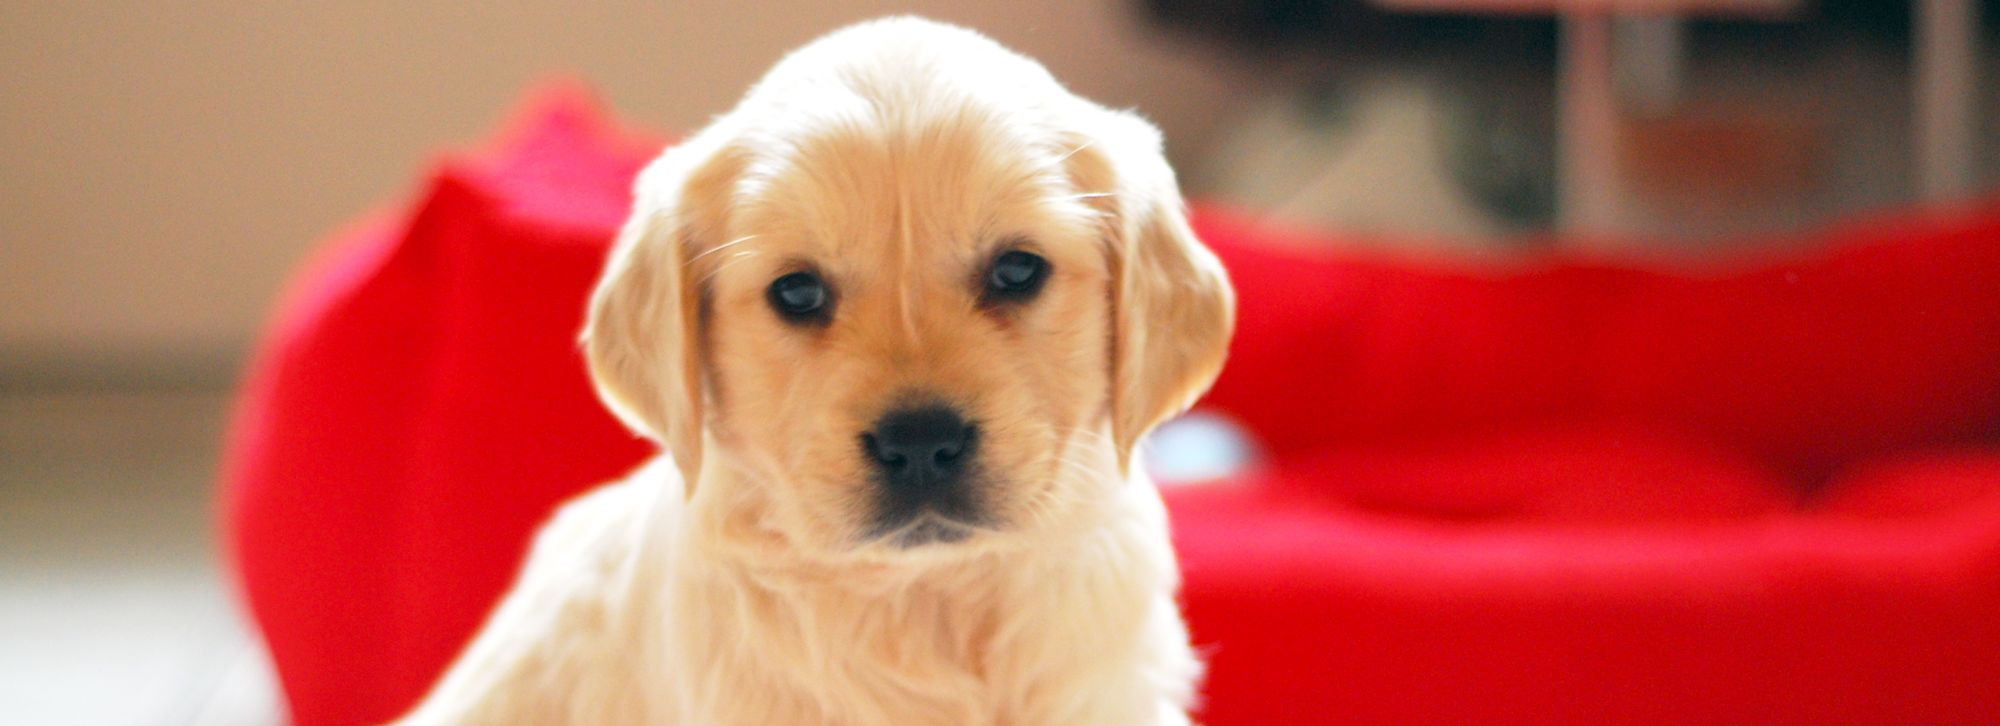 Puppy-Proofing Your Home